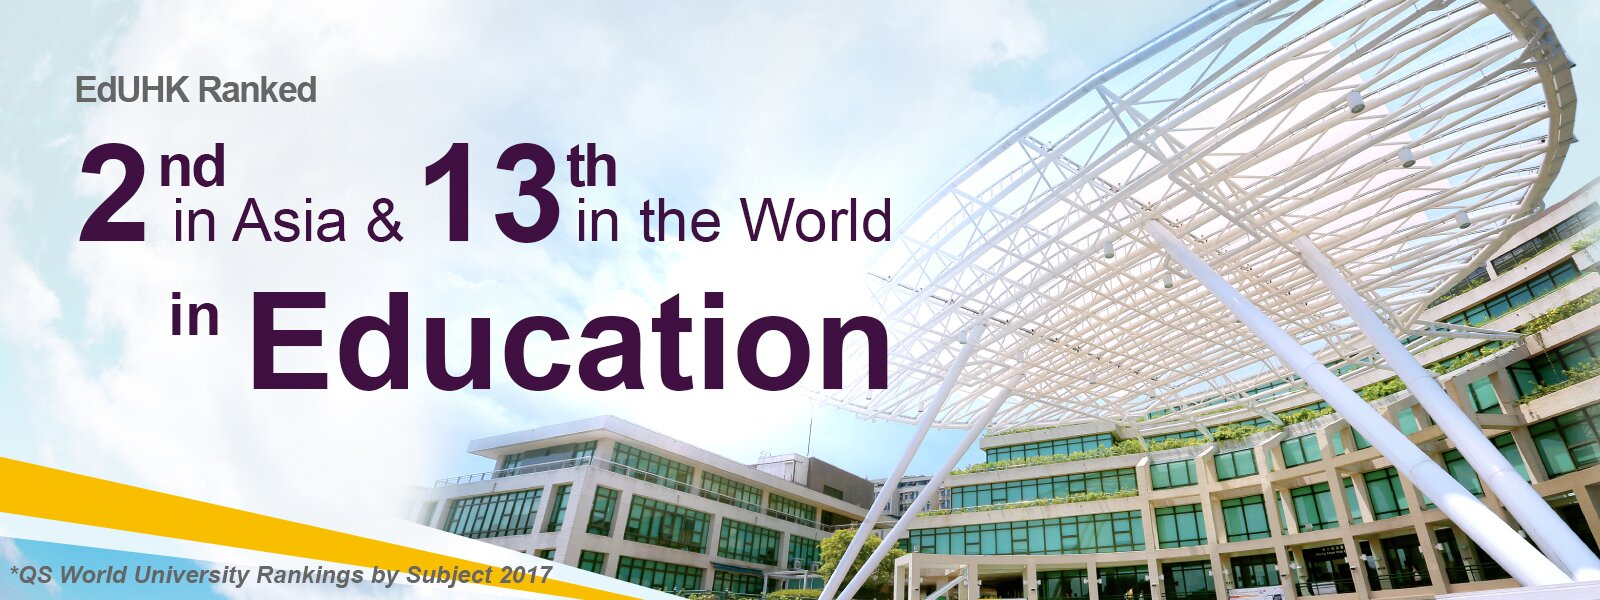 EdUHK Ranked 2nd in Asia & 13th in the World in Education